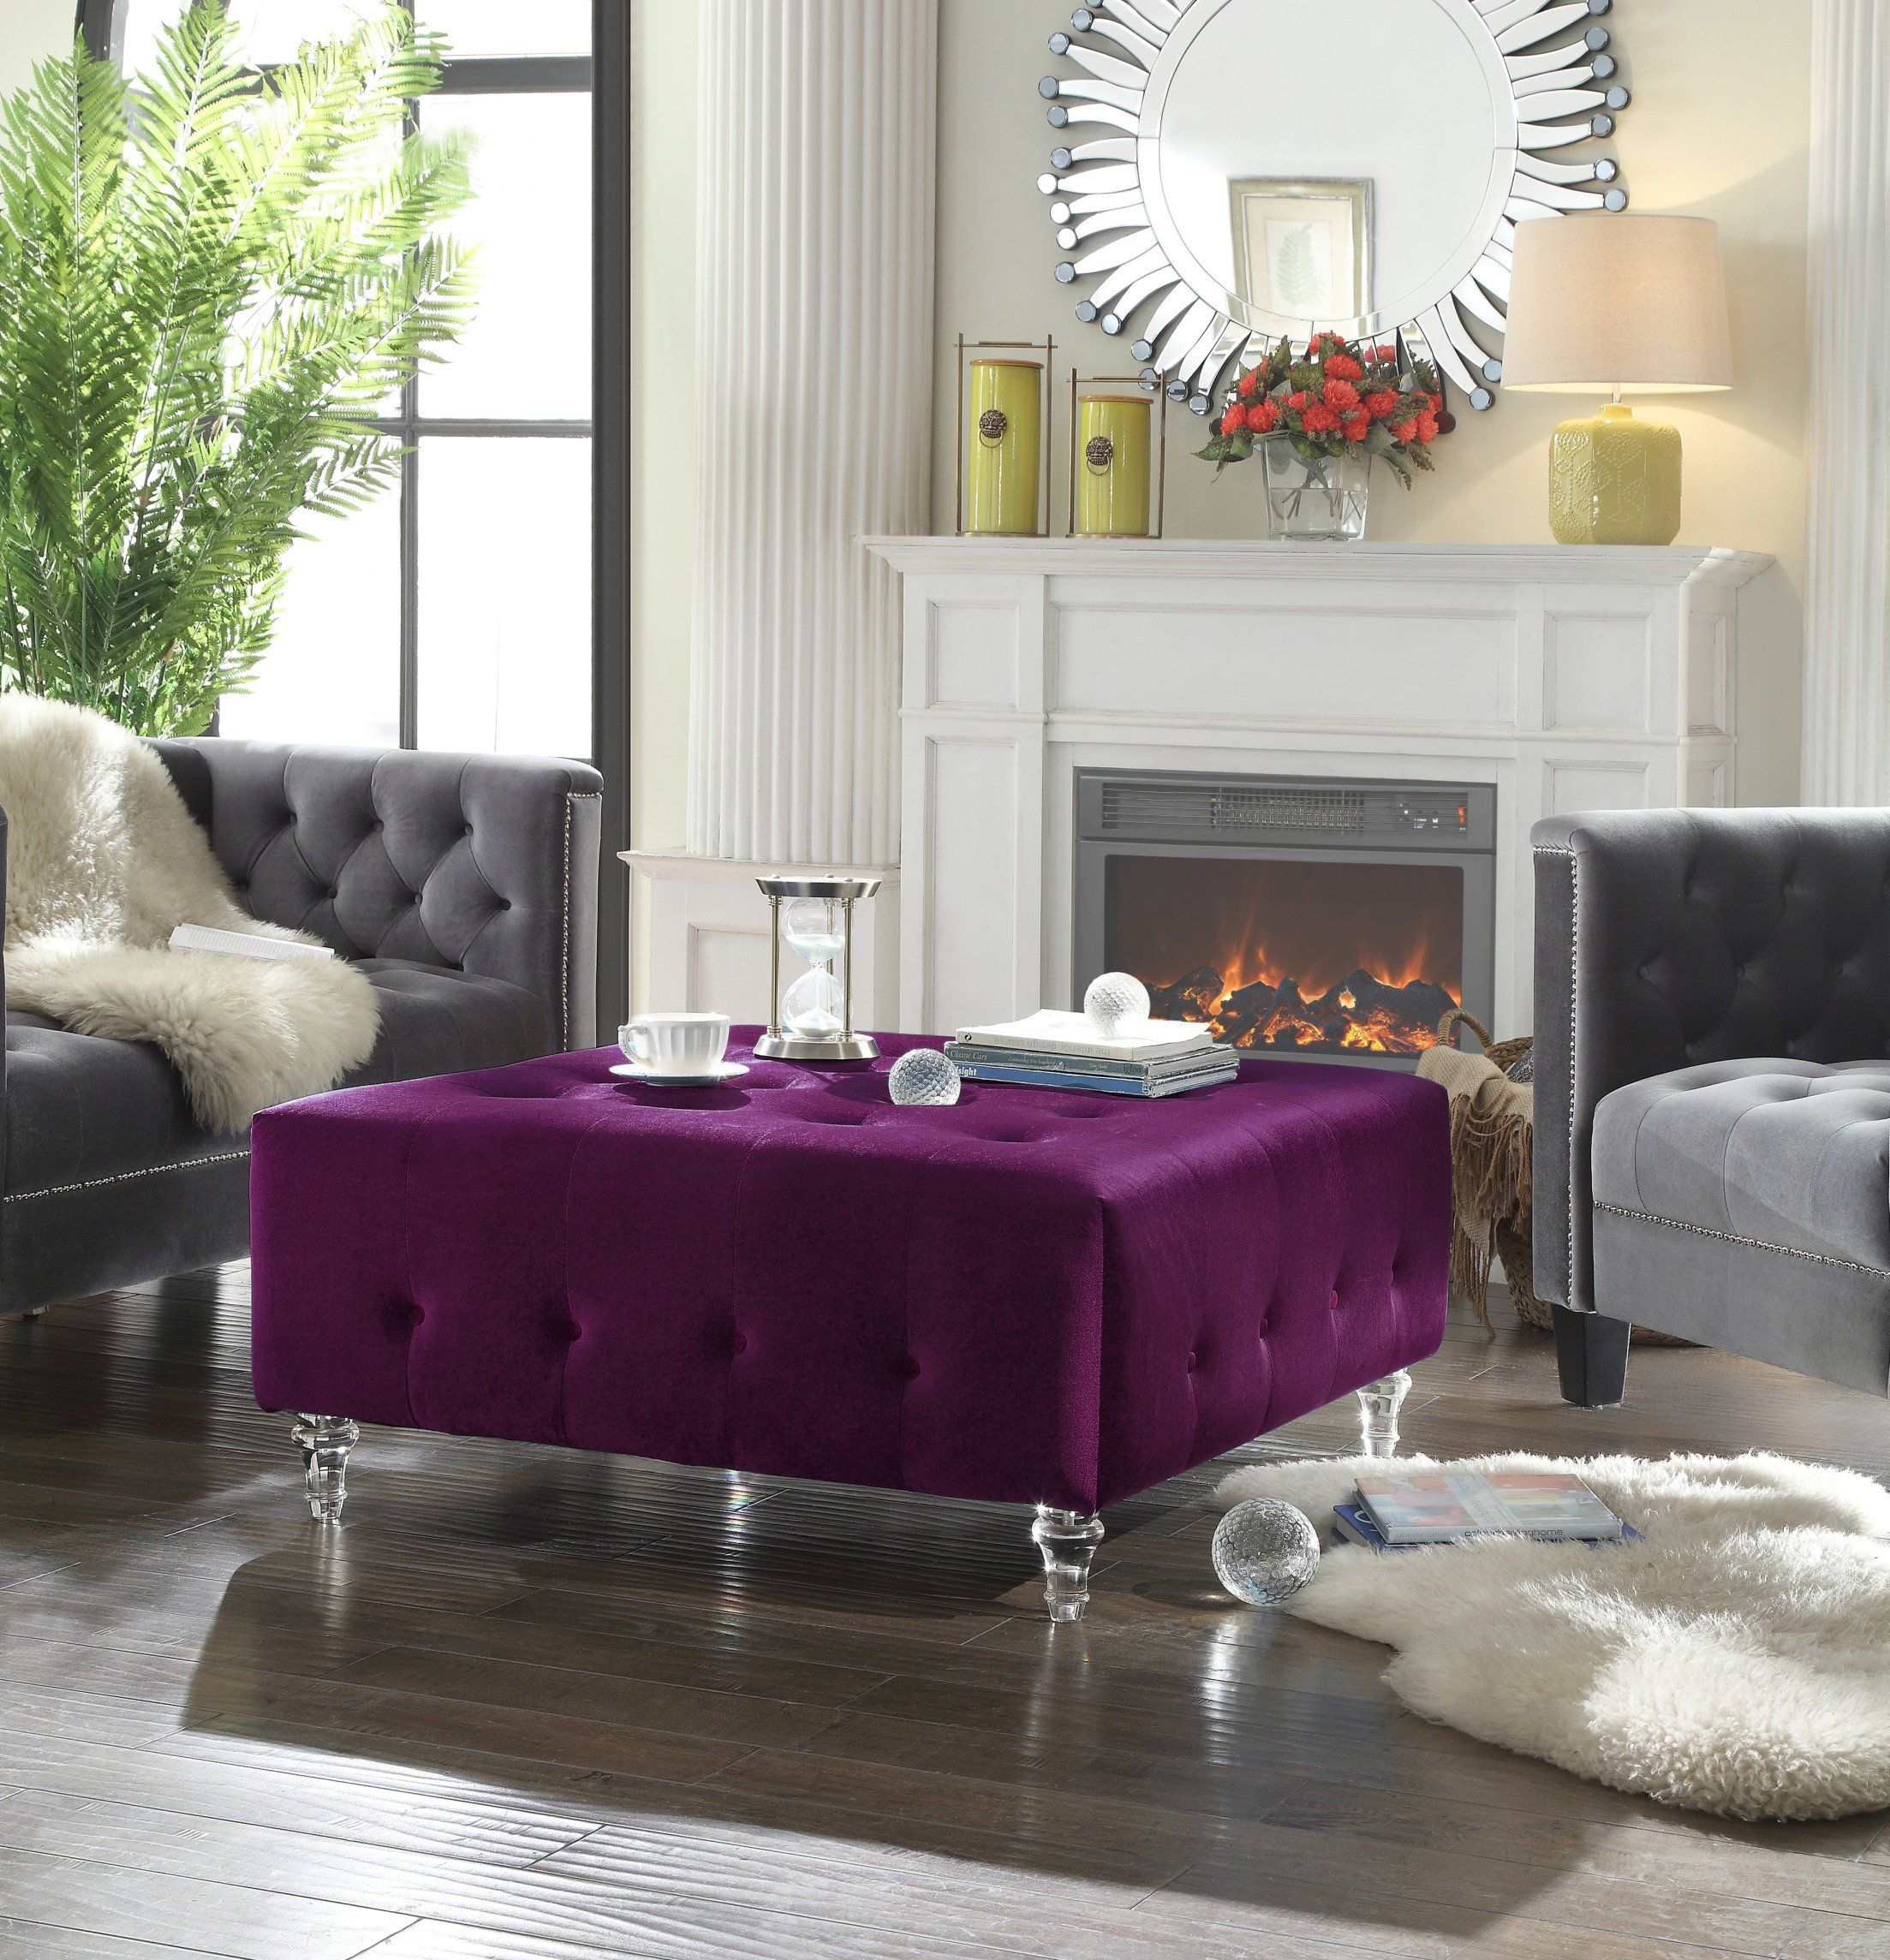 Swell Iconic Home Samspon Coffee Table Ottoman Velvet Upholstered Creativecarmelina Interior Chair Design Creativecarmelinacom